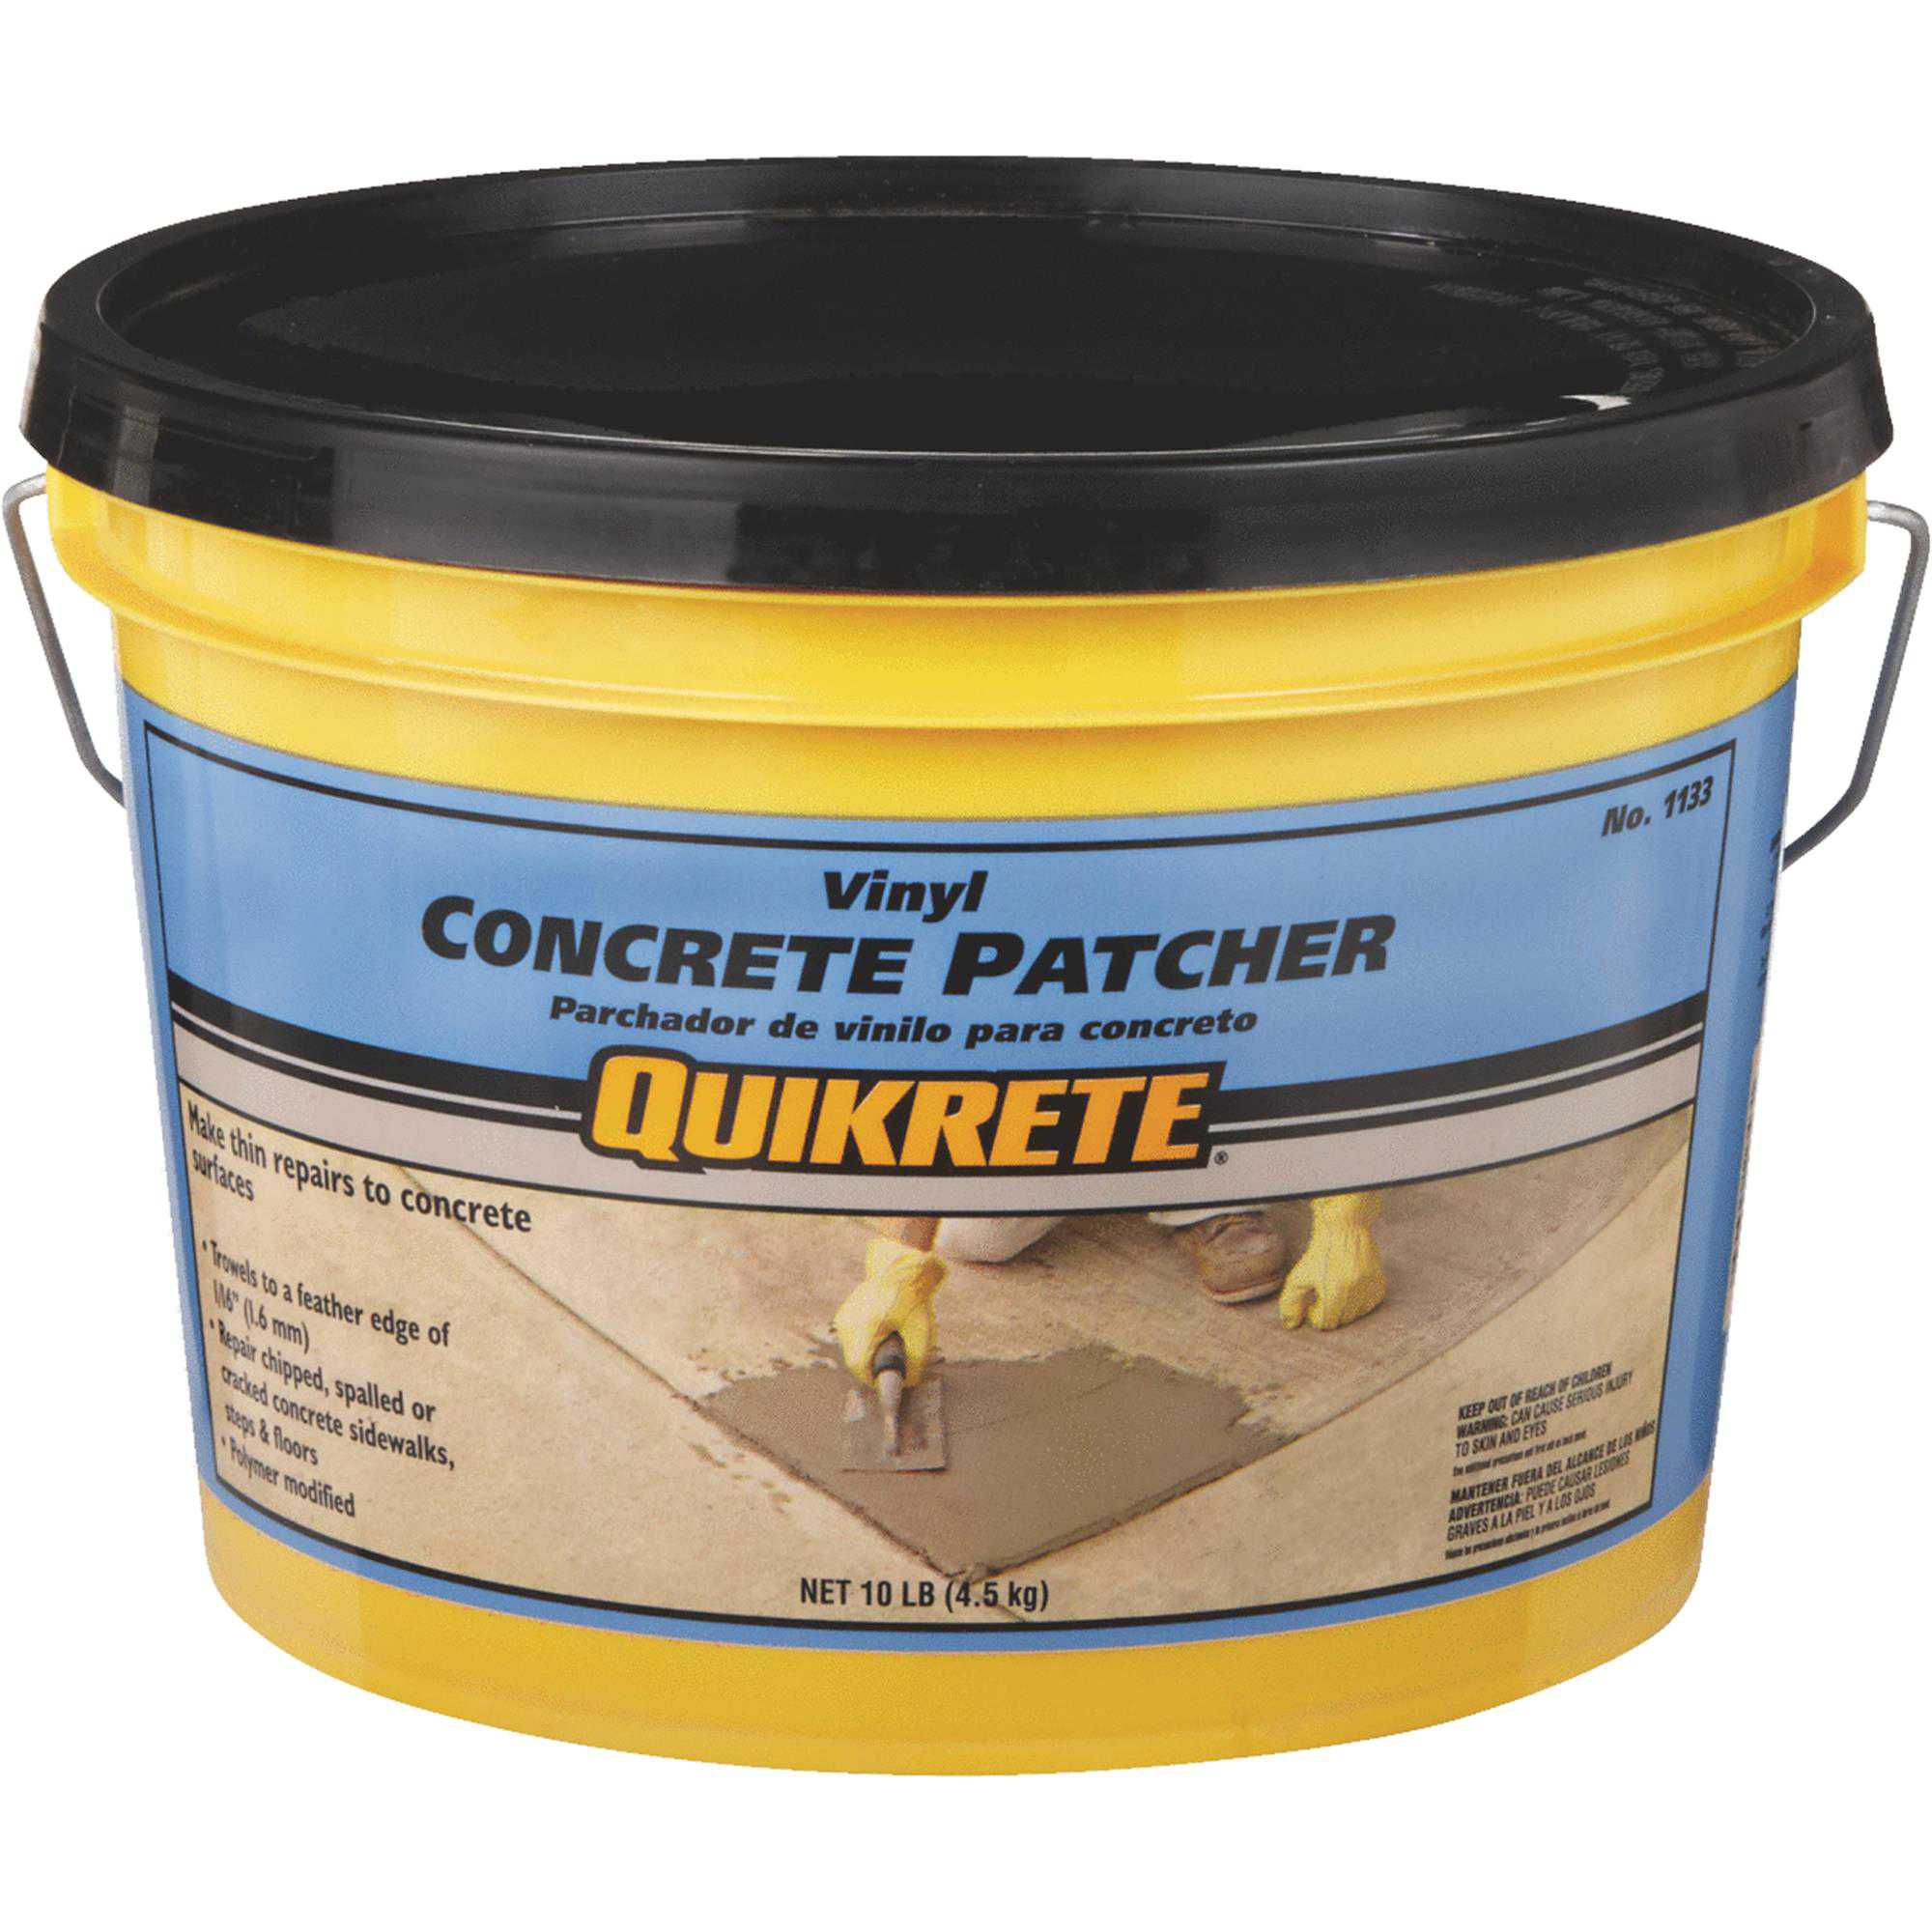 Quikrete Vinyl Concrete Patch